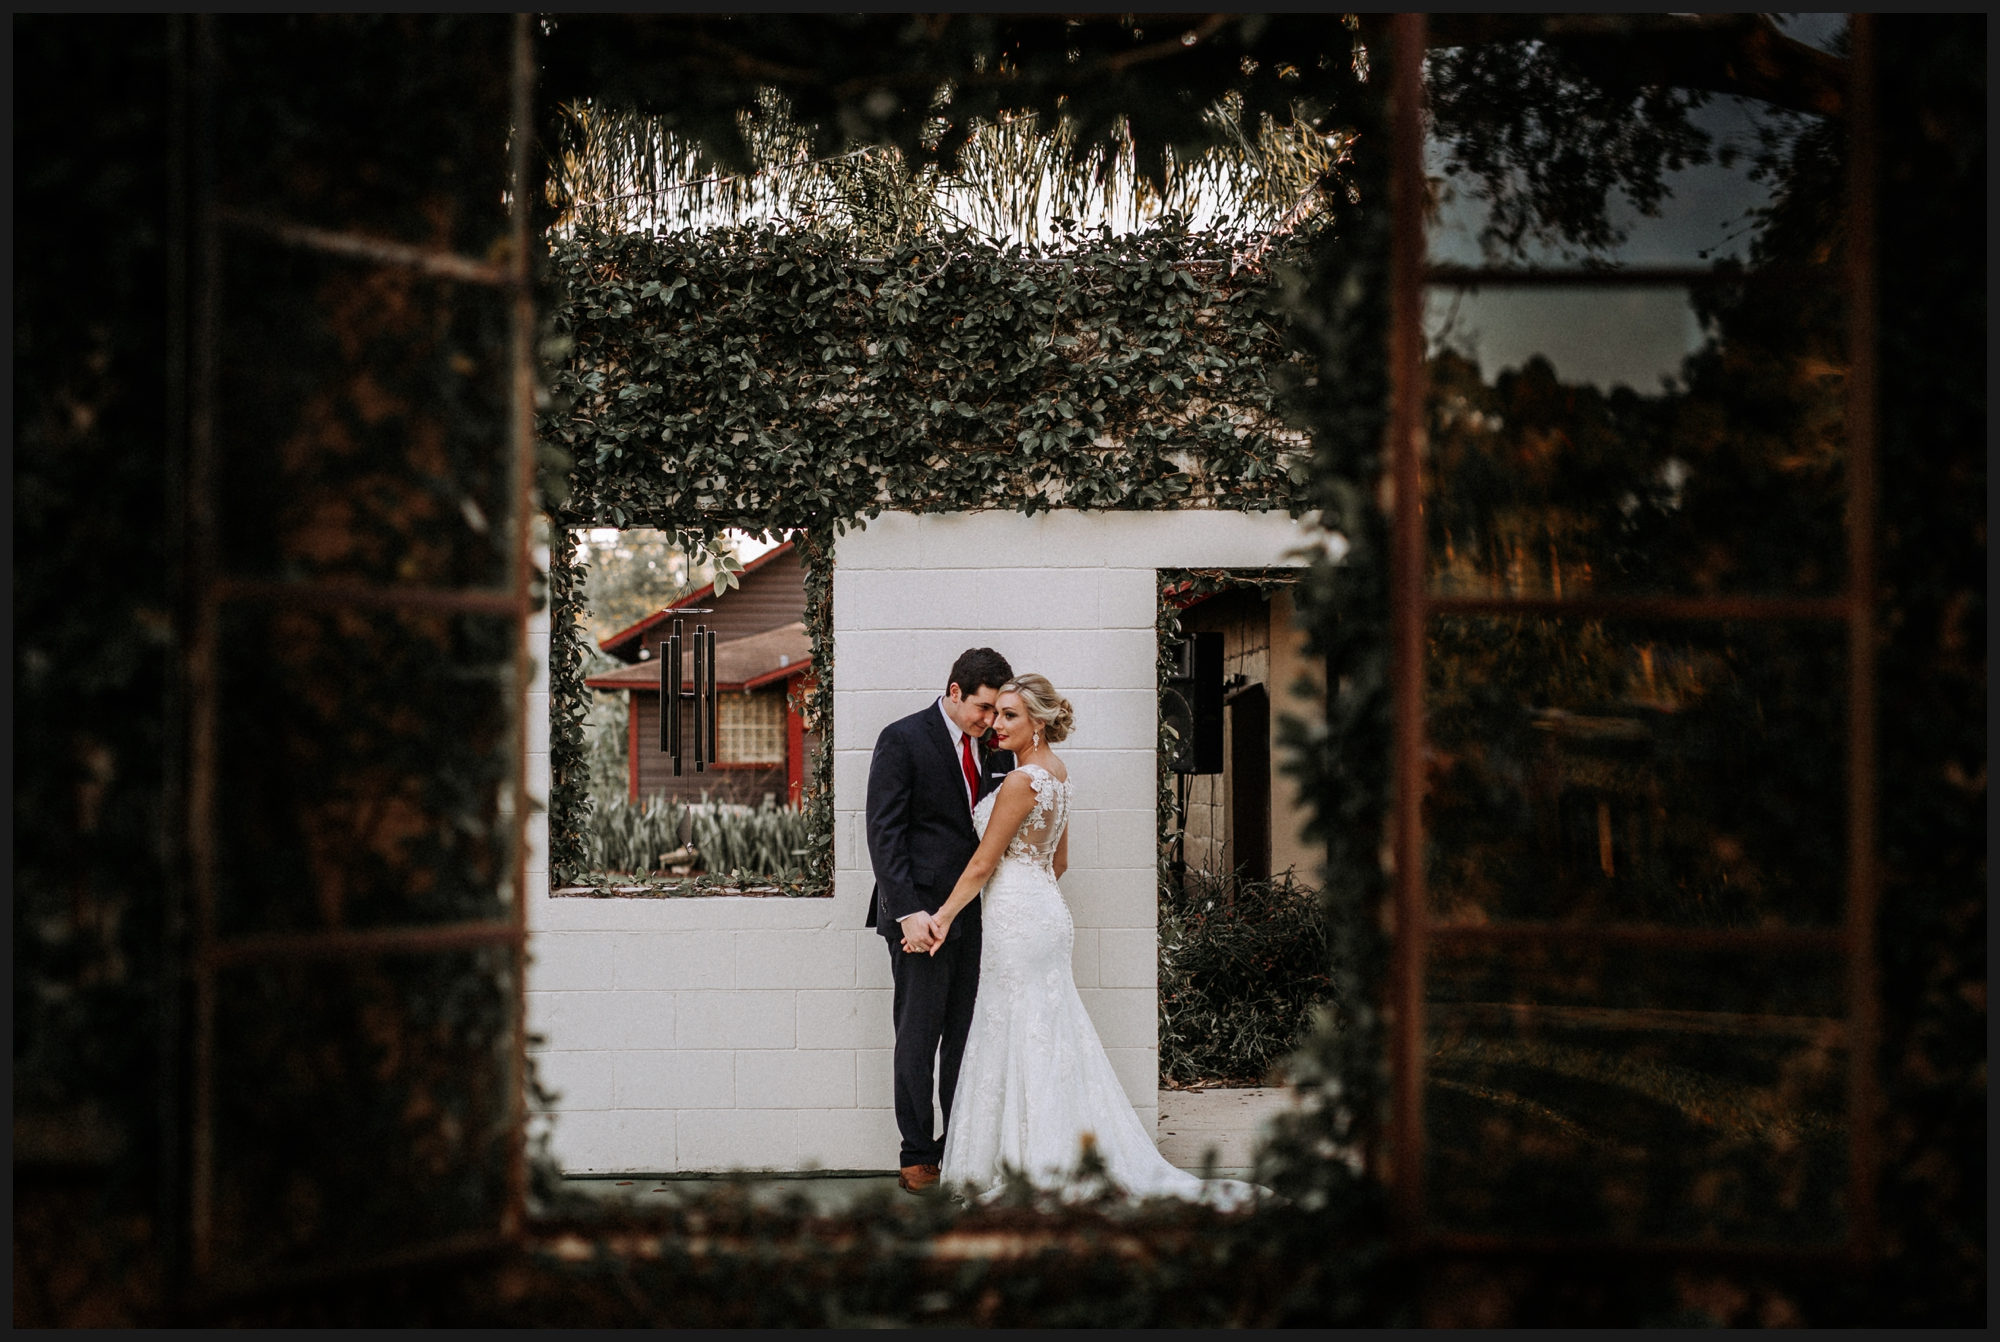 MitchandKatieOrlandoWeddingPhotographer_0105.jpg